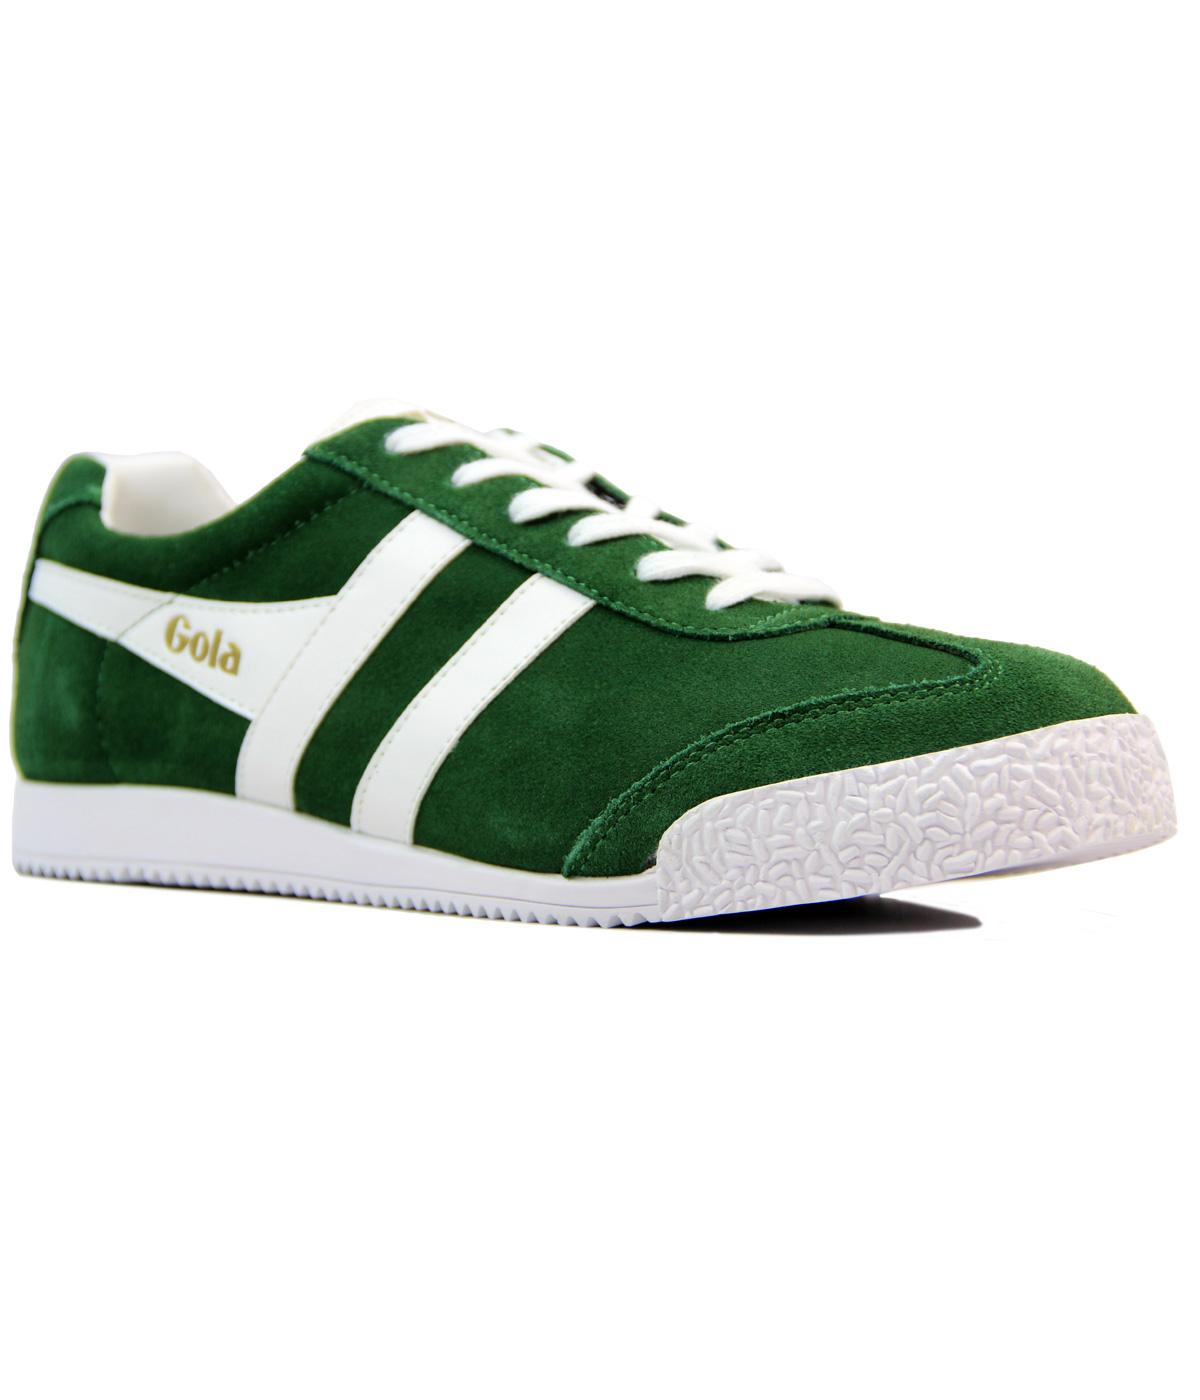 GOLA Harrier Premium Suede Retro Trainers GREEN